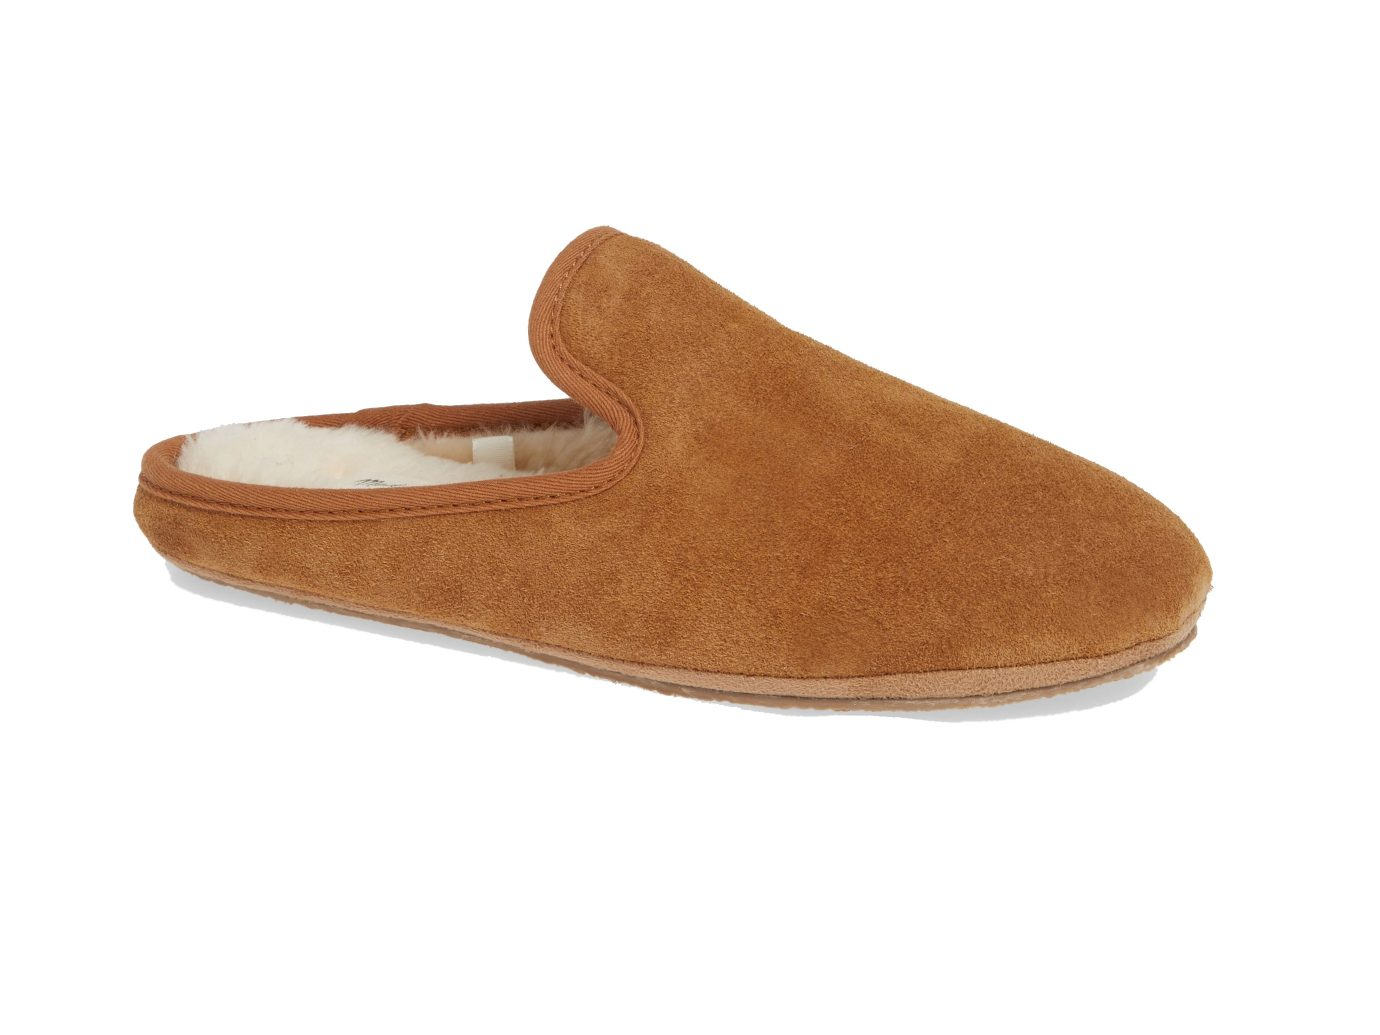 Madewell Loafer Slippers